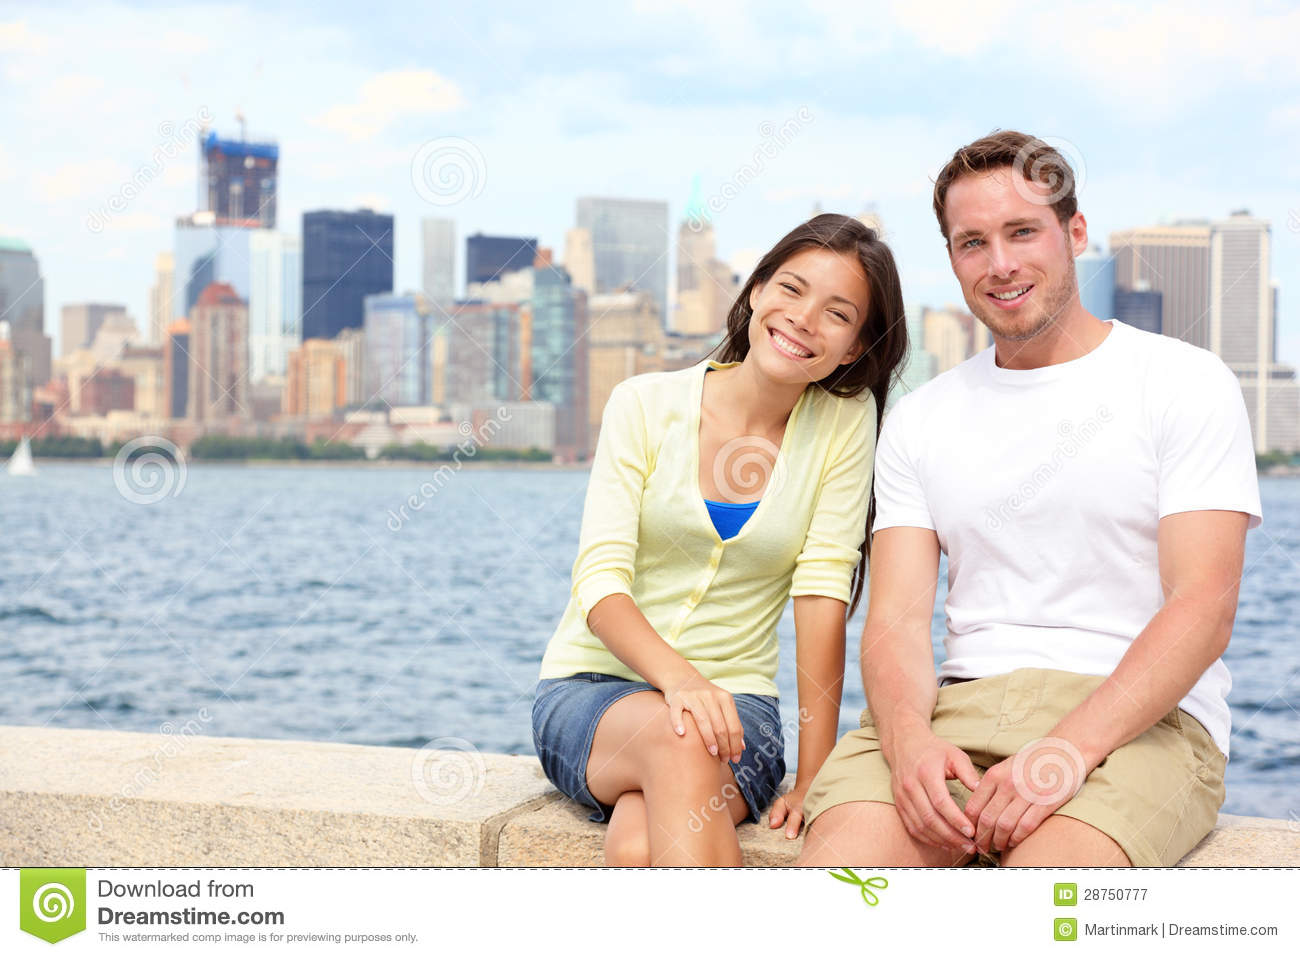 Free online dating sites in new york